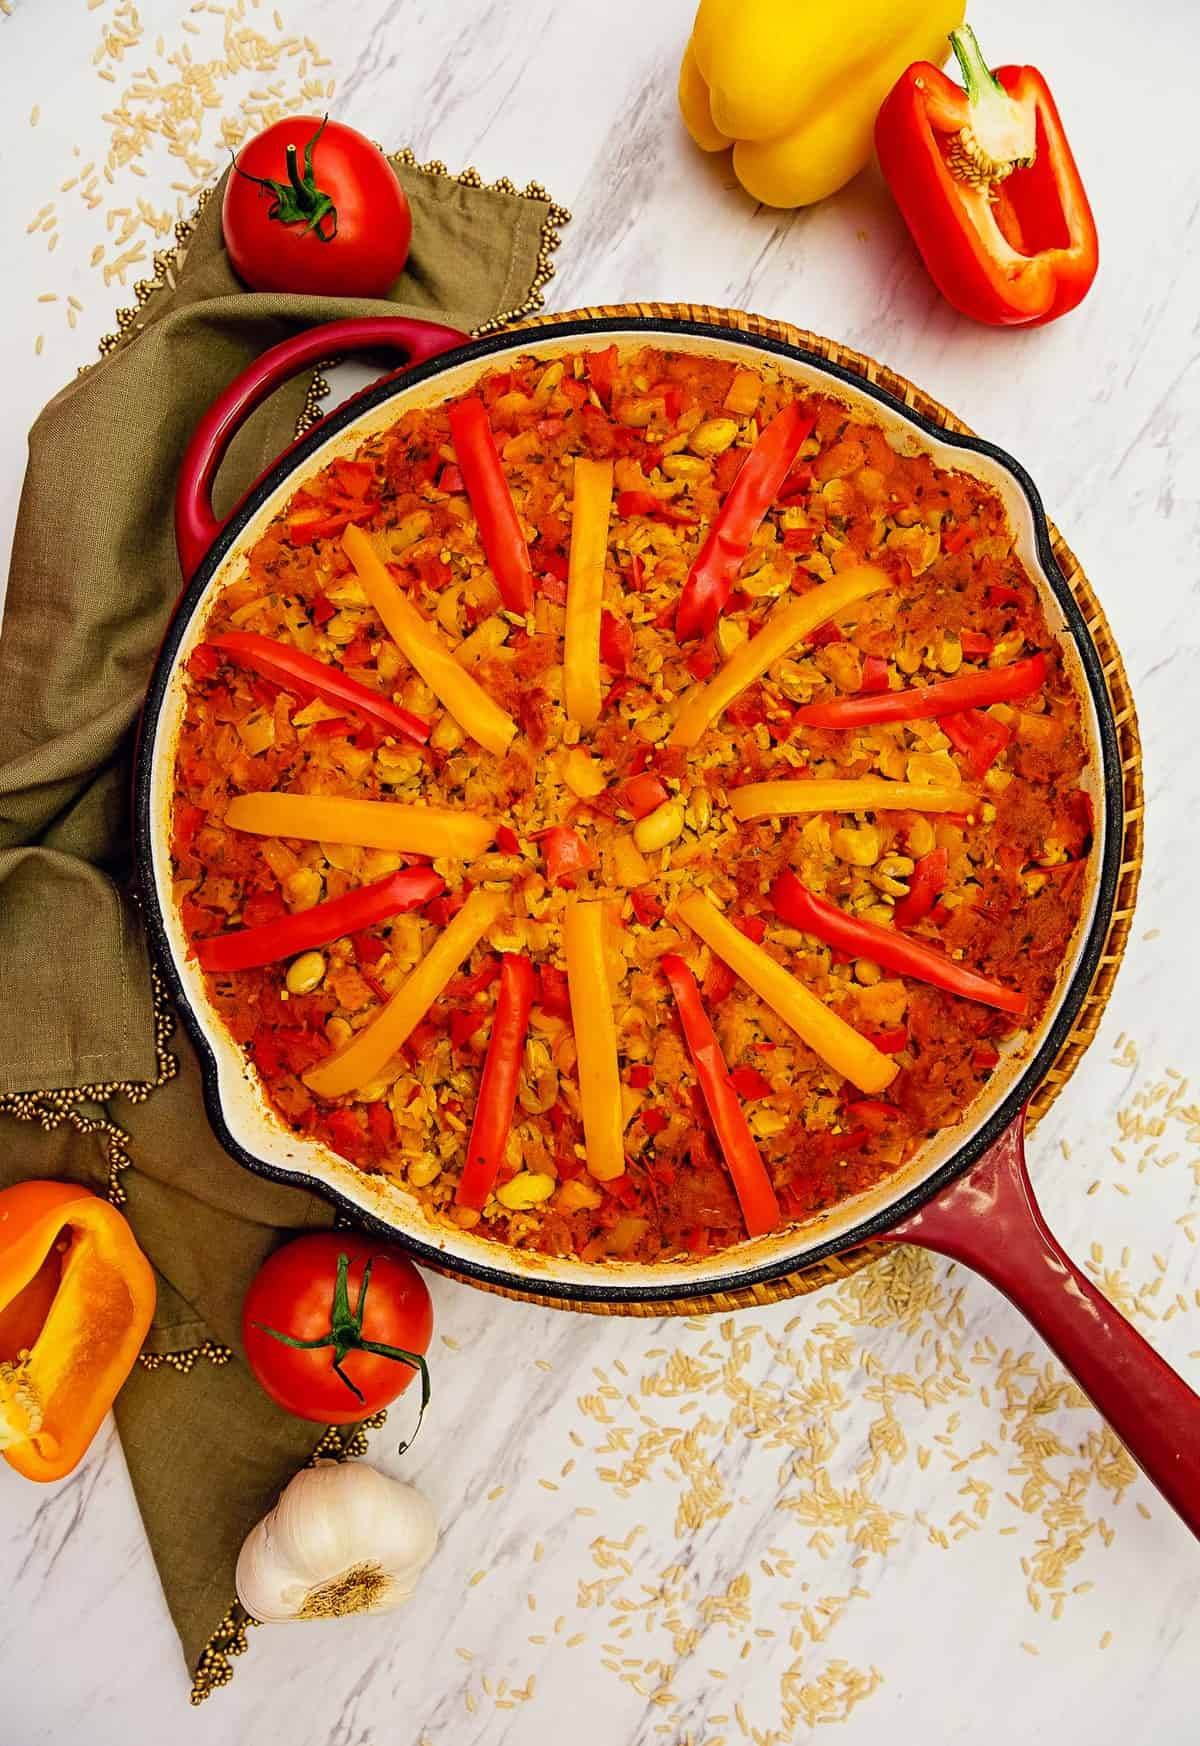 paella, vegan paella, vegetarian paella, whole food plant based paella, oil free paella, gluten free paella, paella recipe, recipe, vegan, vegetarian, whole food plant based, gluten free, oil free, dairy free, wfpb, dinner, lunch, rice, brown rice, peppers, beans, easy, simple, healthy, side, side dish,